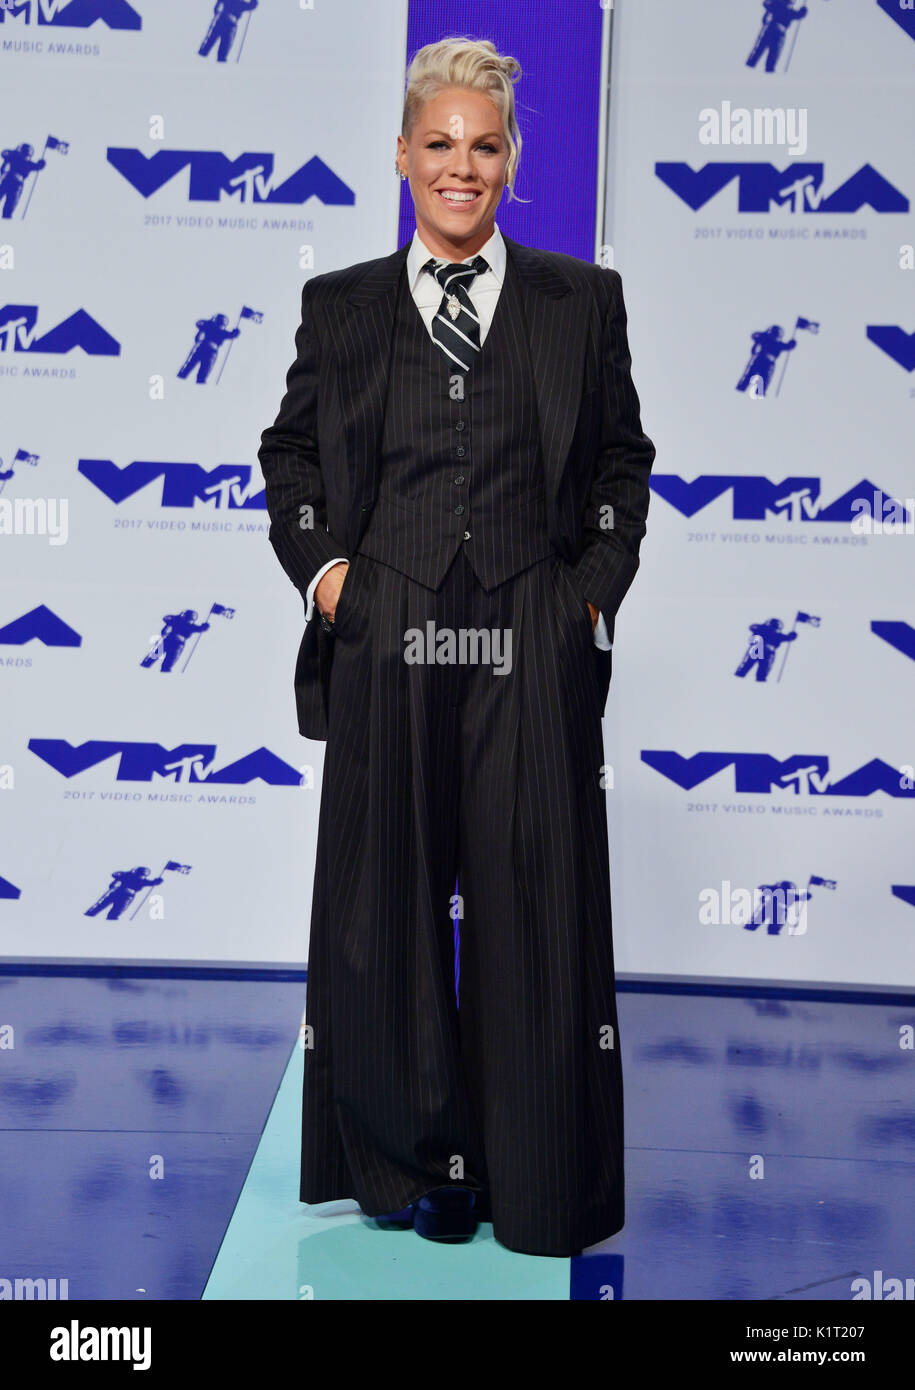 a_Pink 032 arriving at the MTV VMA 2017 ( Music Awards ) at the Great Western Forum in Los Angeles. August 27, 2017. - Stock Image